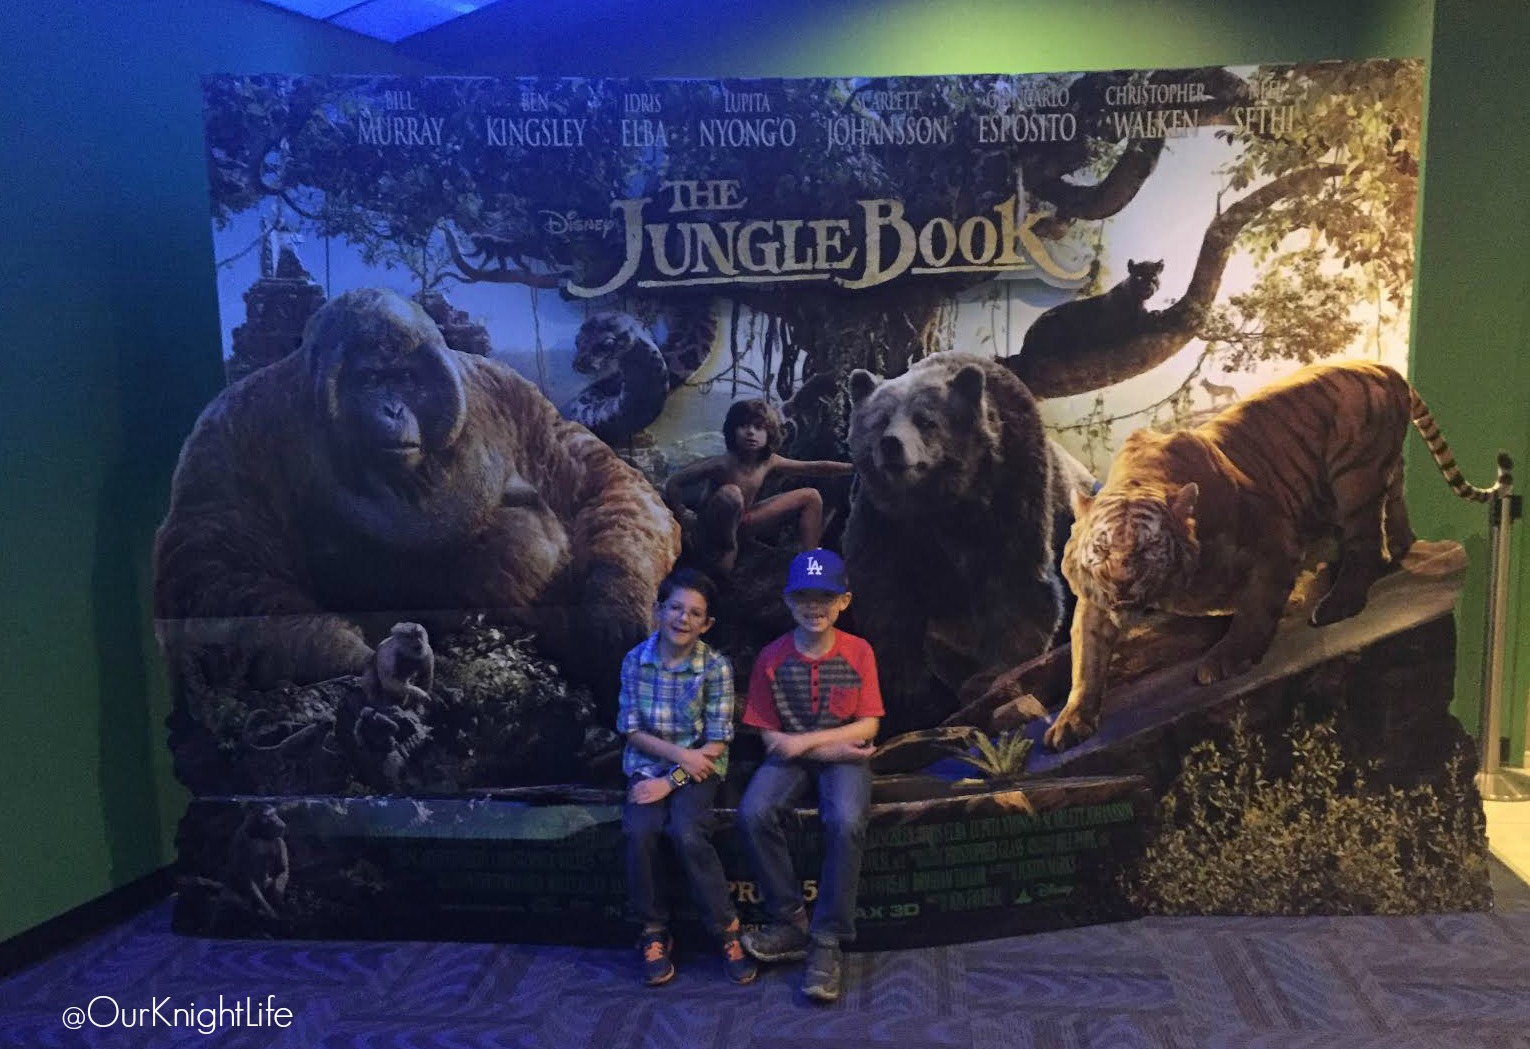 The Jungle Book at AMC Prime at Dolby Cinema